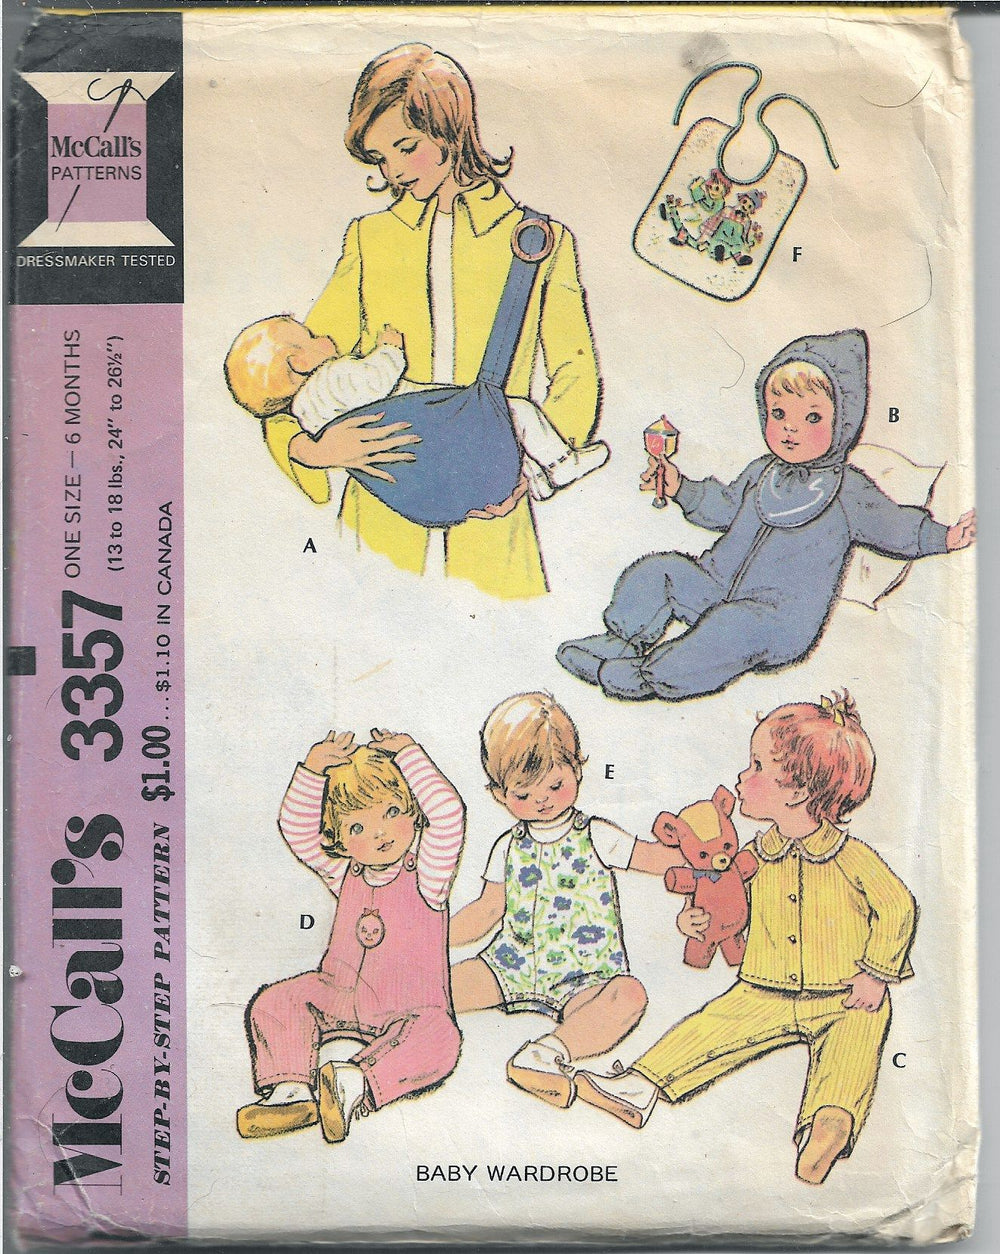 McCalls 3357 Baby Infant Snowsuit Jacket Overalls Vintage Sewing Pattern 1970s - VintageStitching - Vintage Sewing Patterns